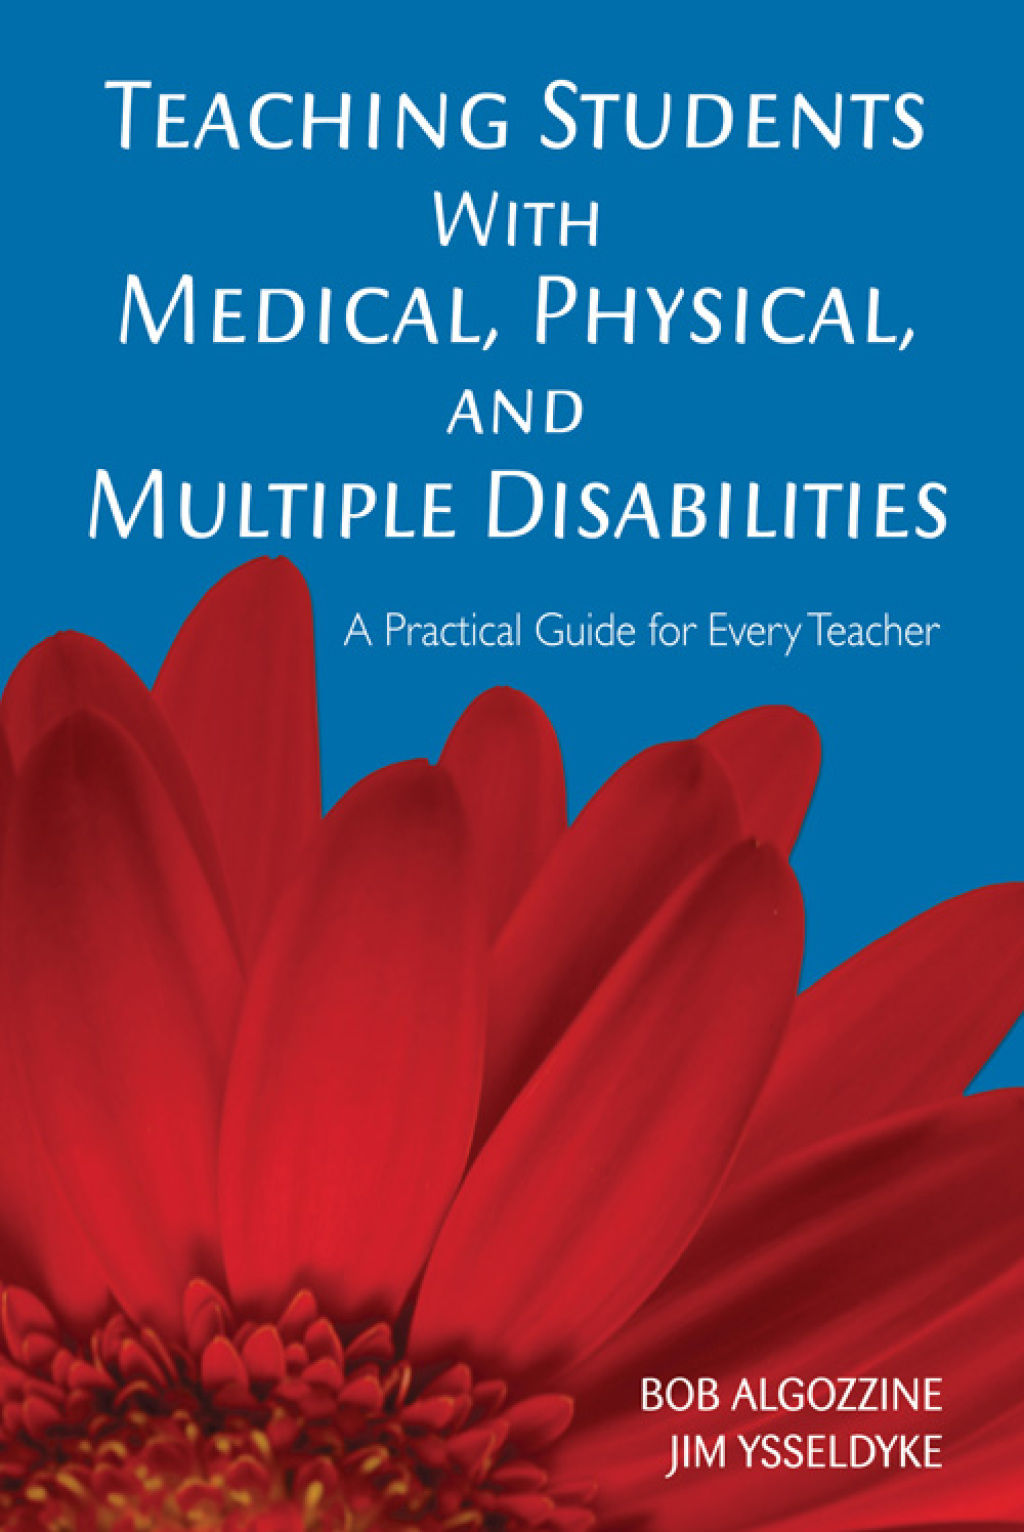 Teaching Students With Medical, Physical, and Multiple Disabilities (ebook) eBooks